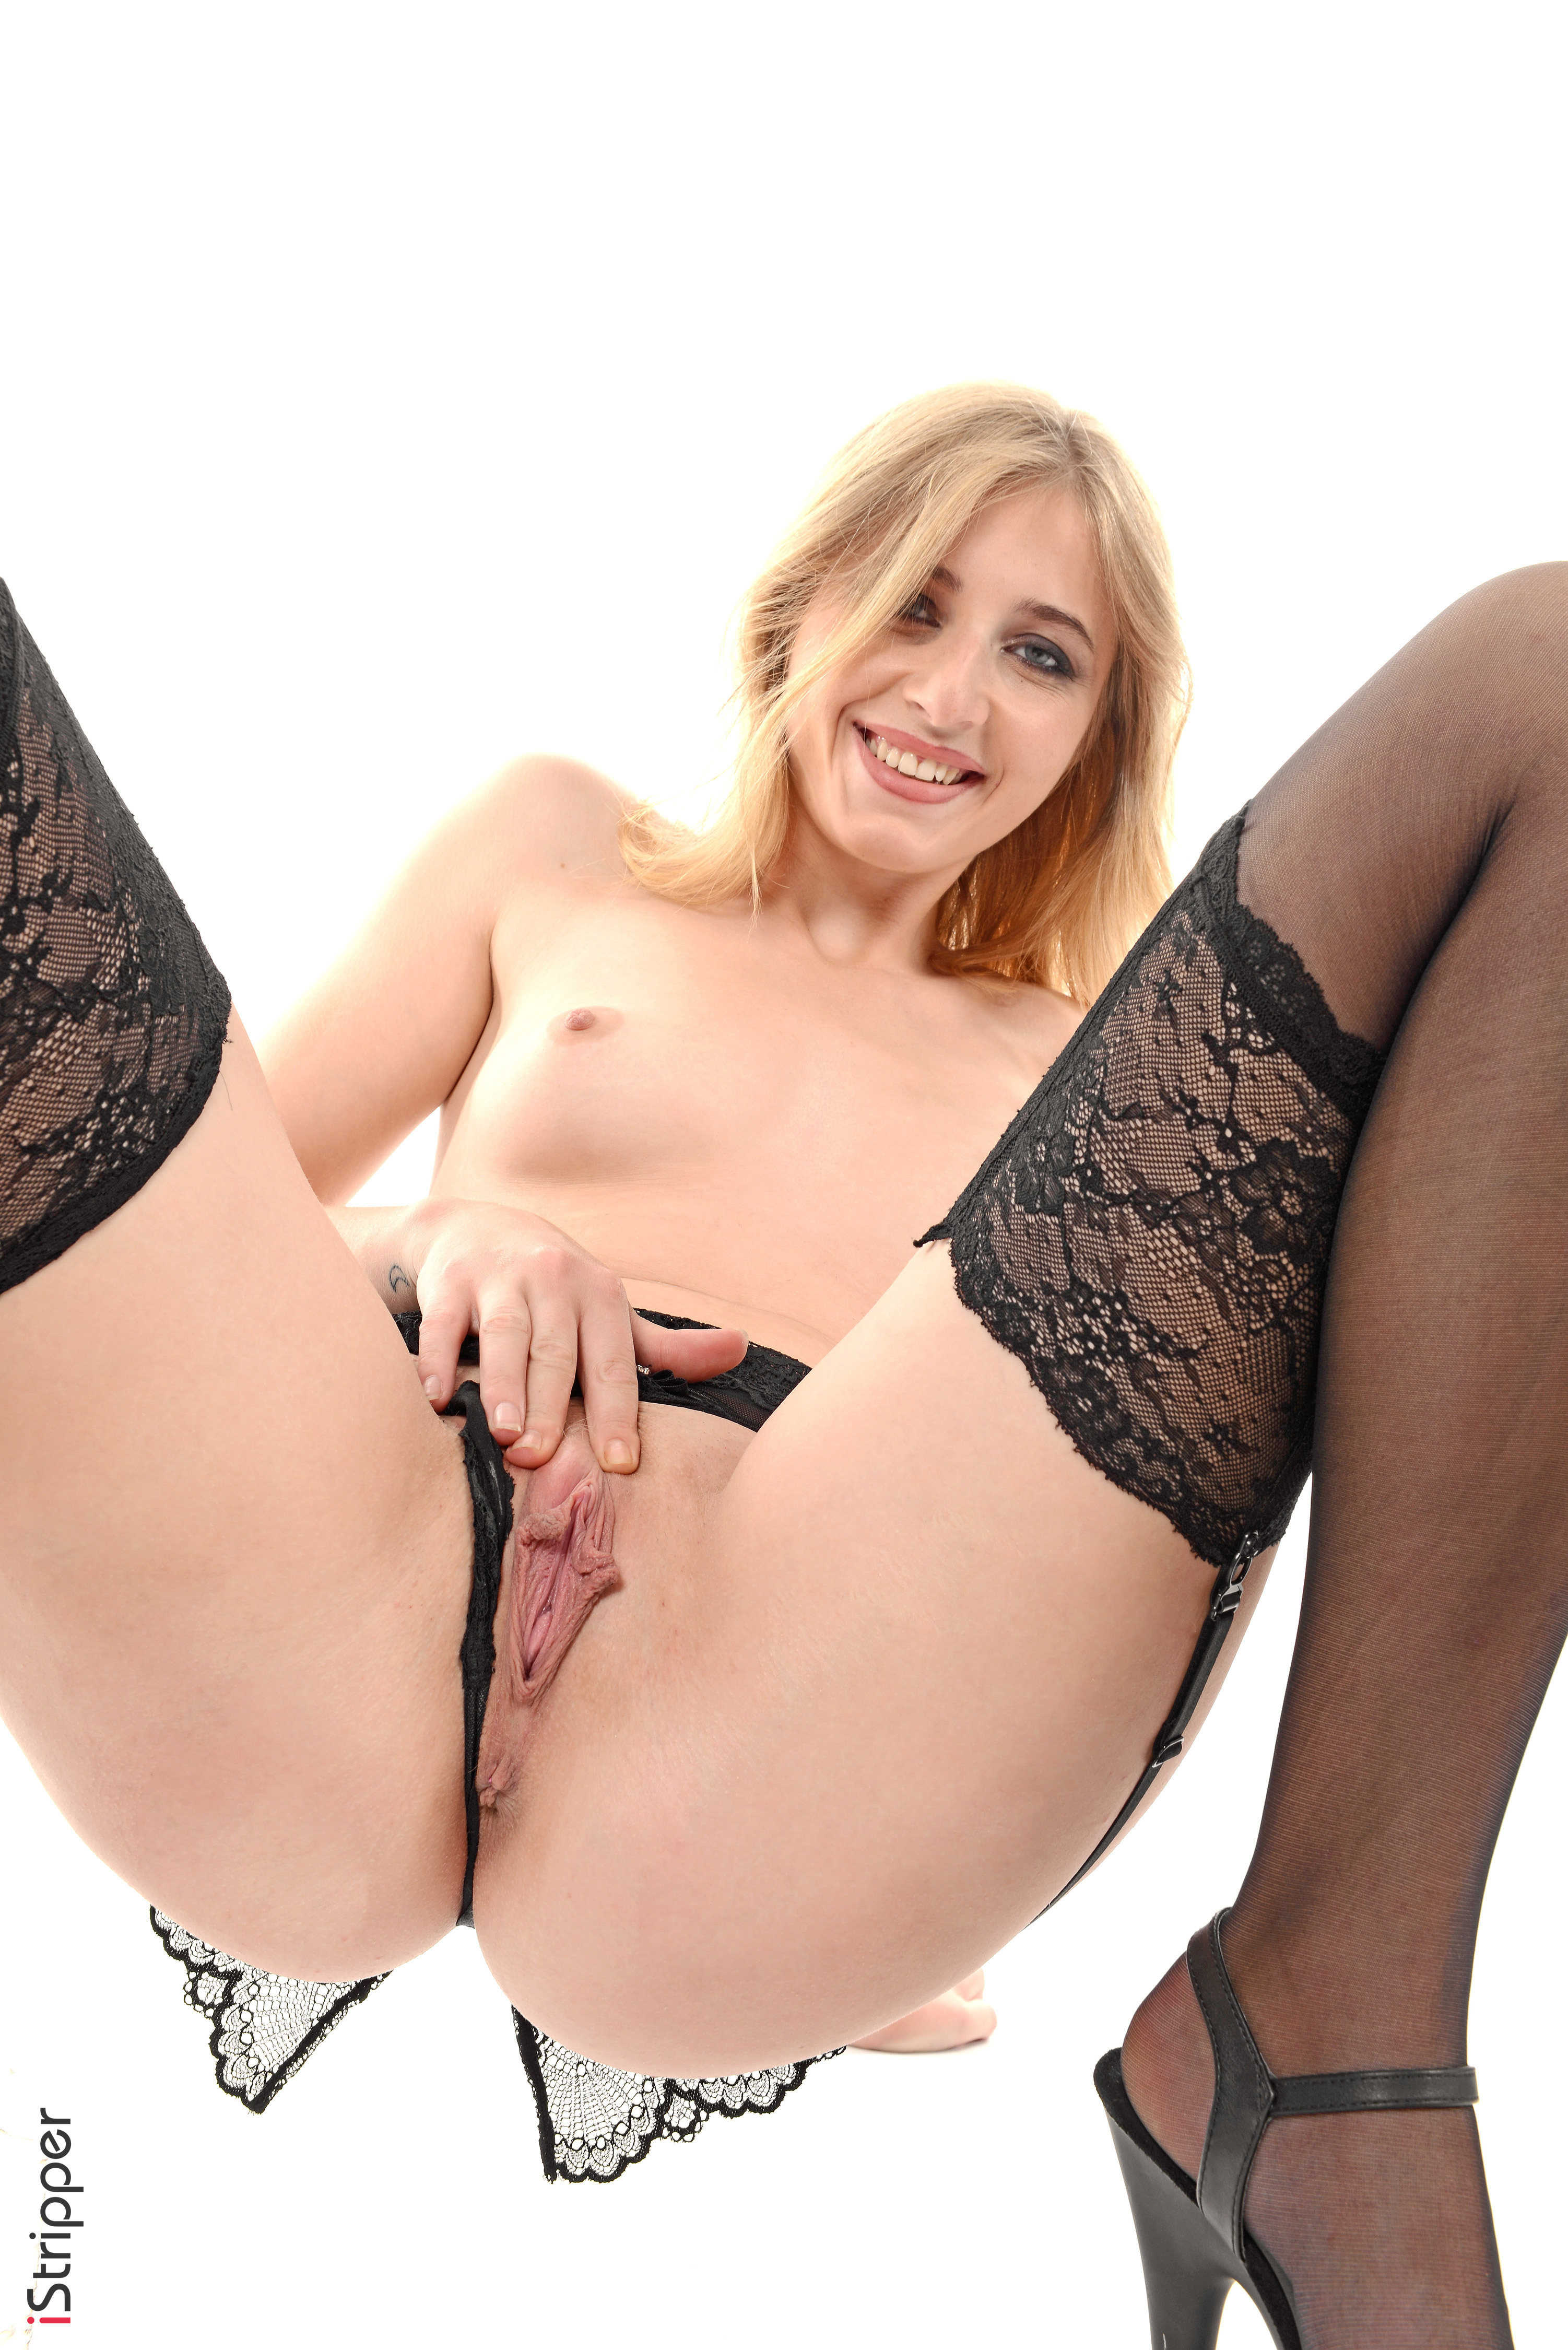 shaved pussy pic galleries